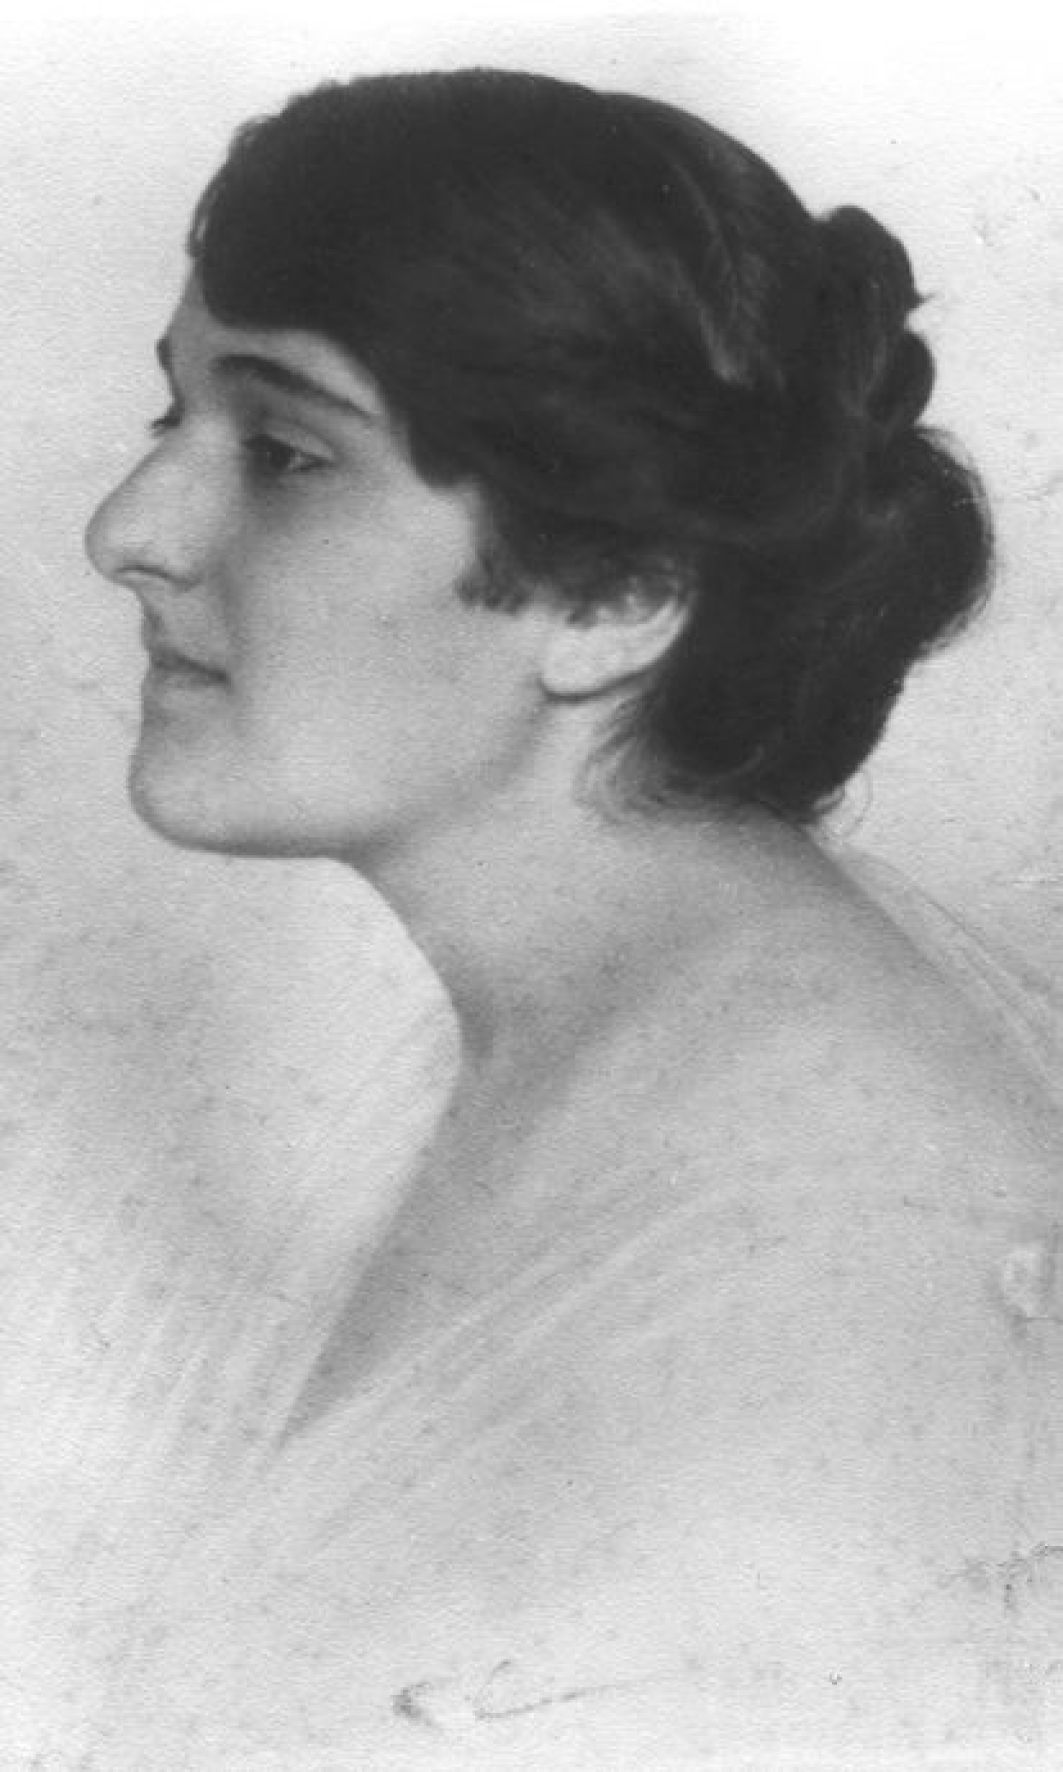 The writer Venetiana Taubner-Calderon (1897-1963), better known as Veza, married Elias Canetti in 1934.